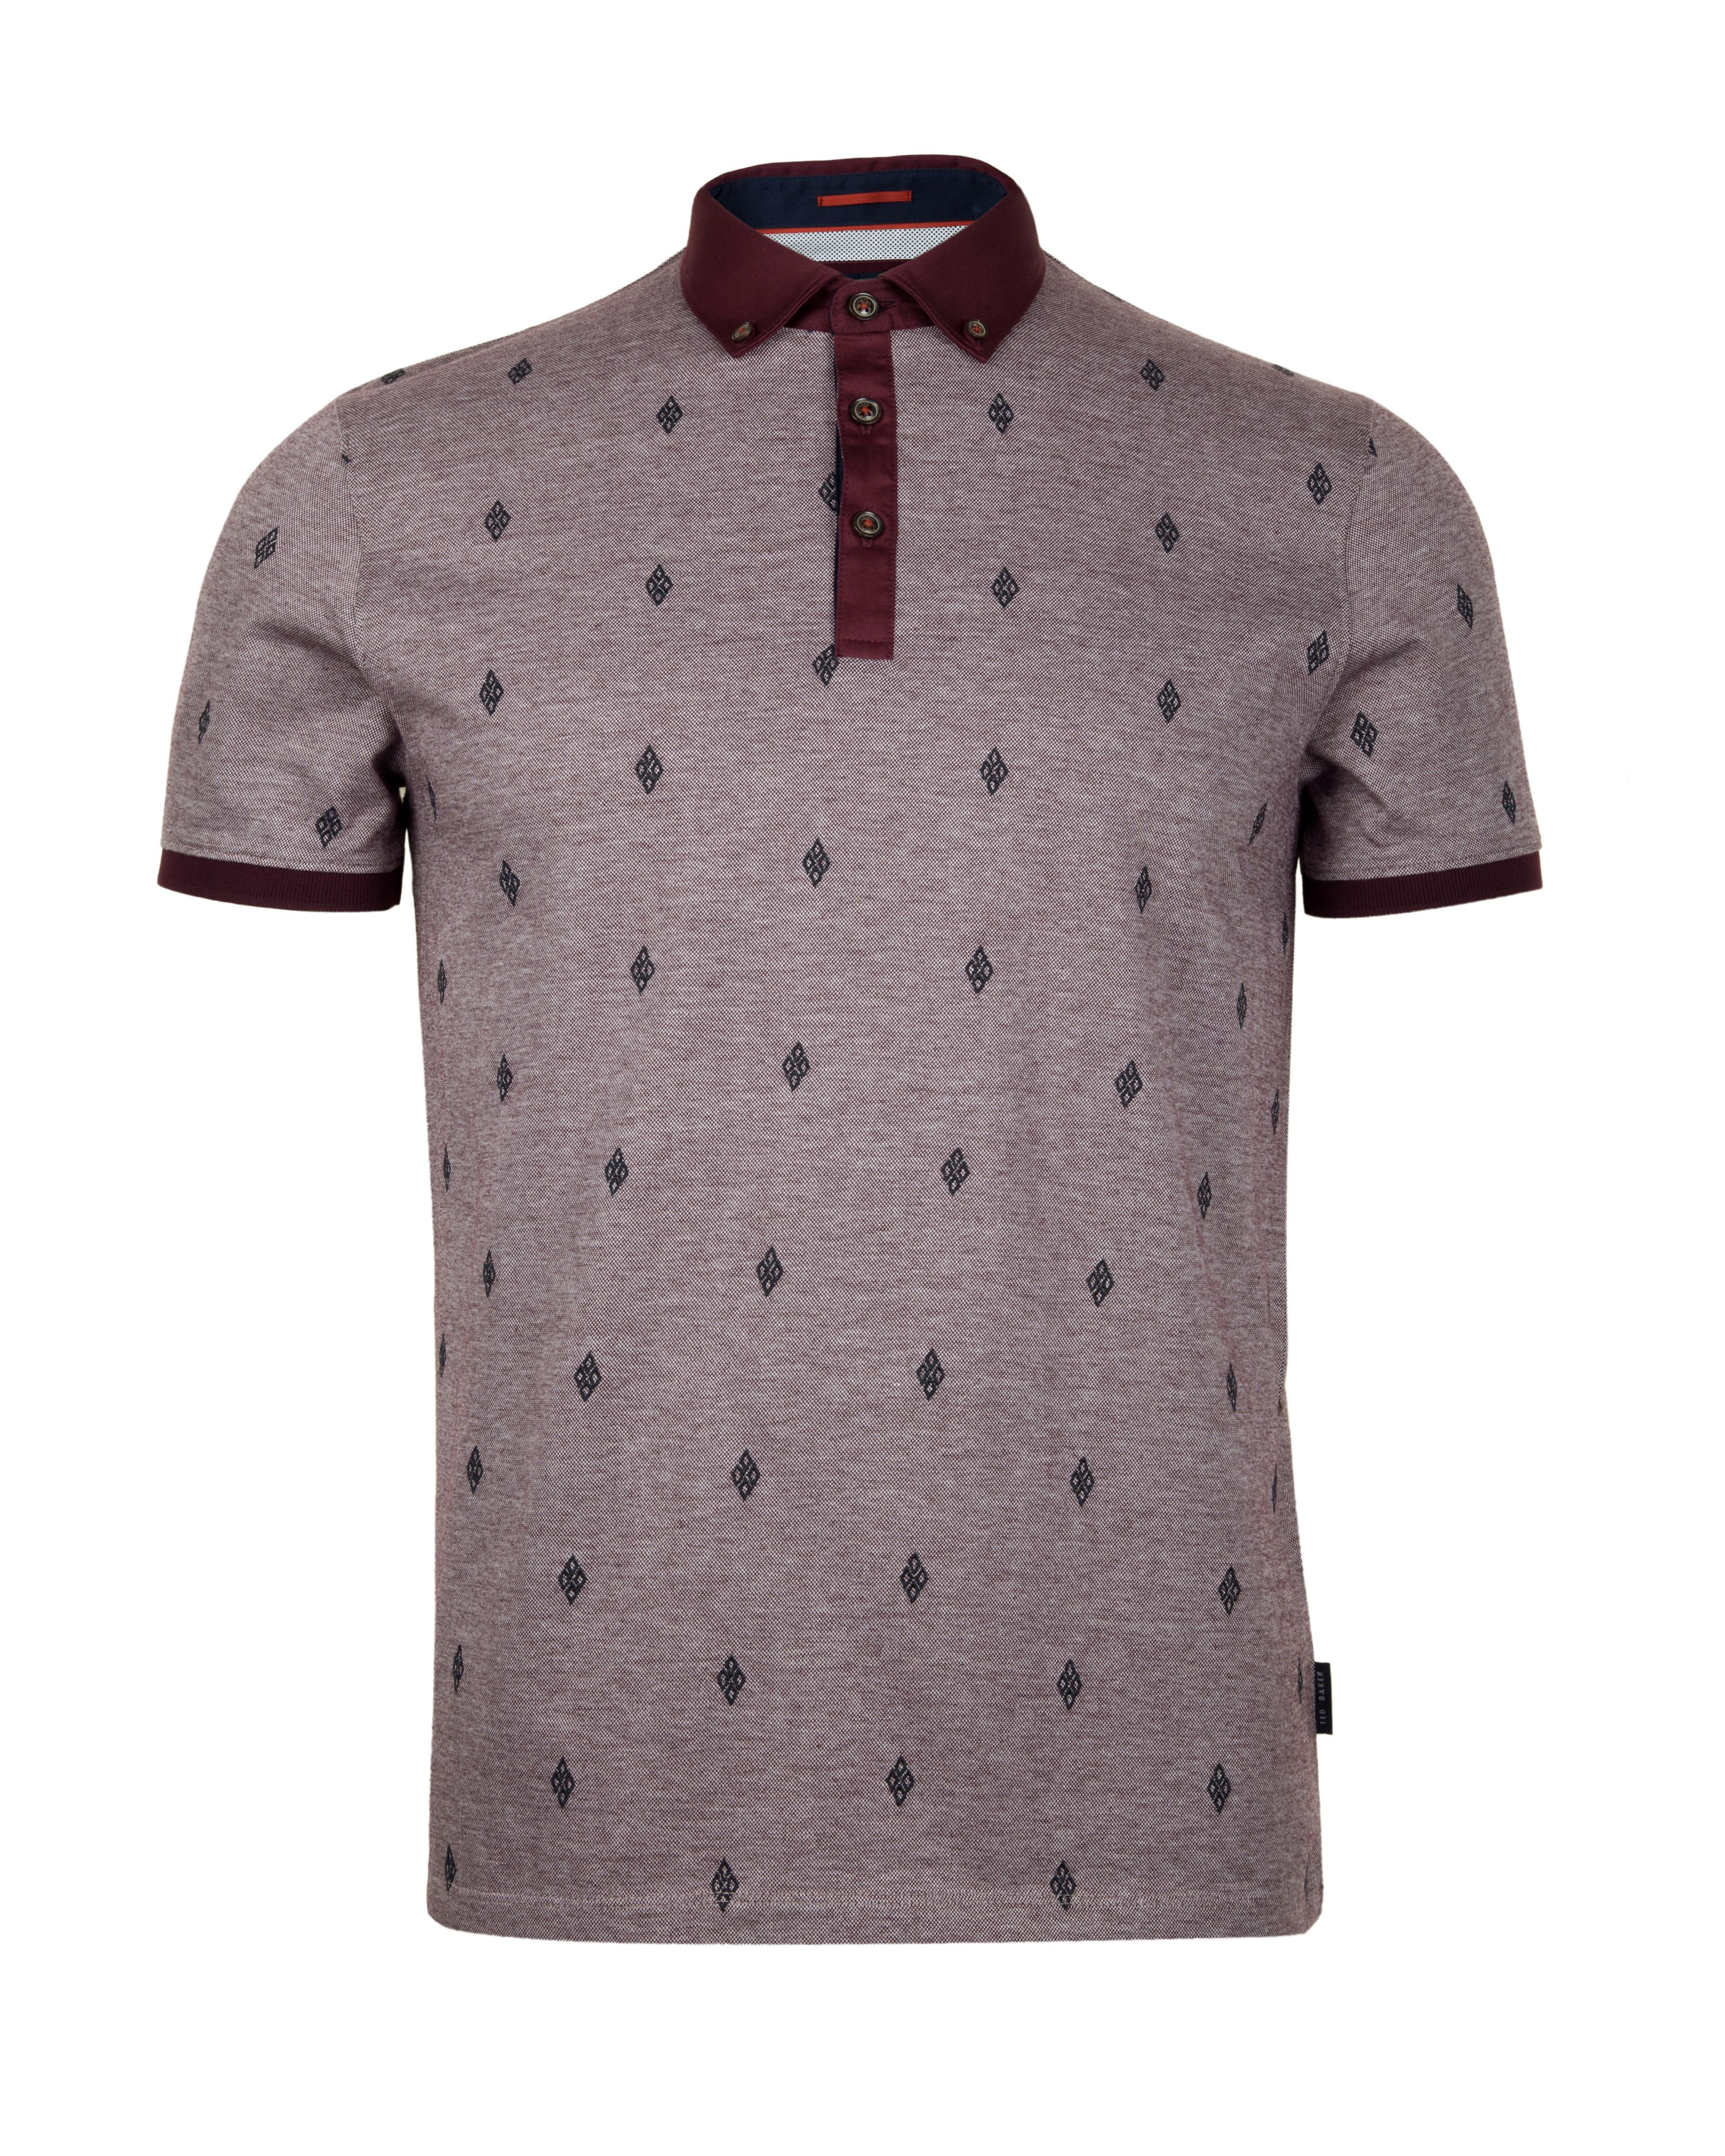 Hurn embroided polo shirt